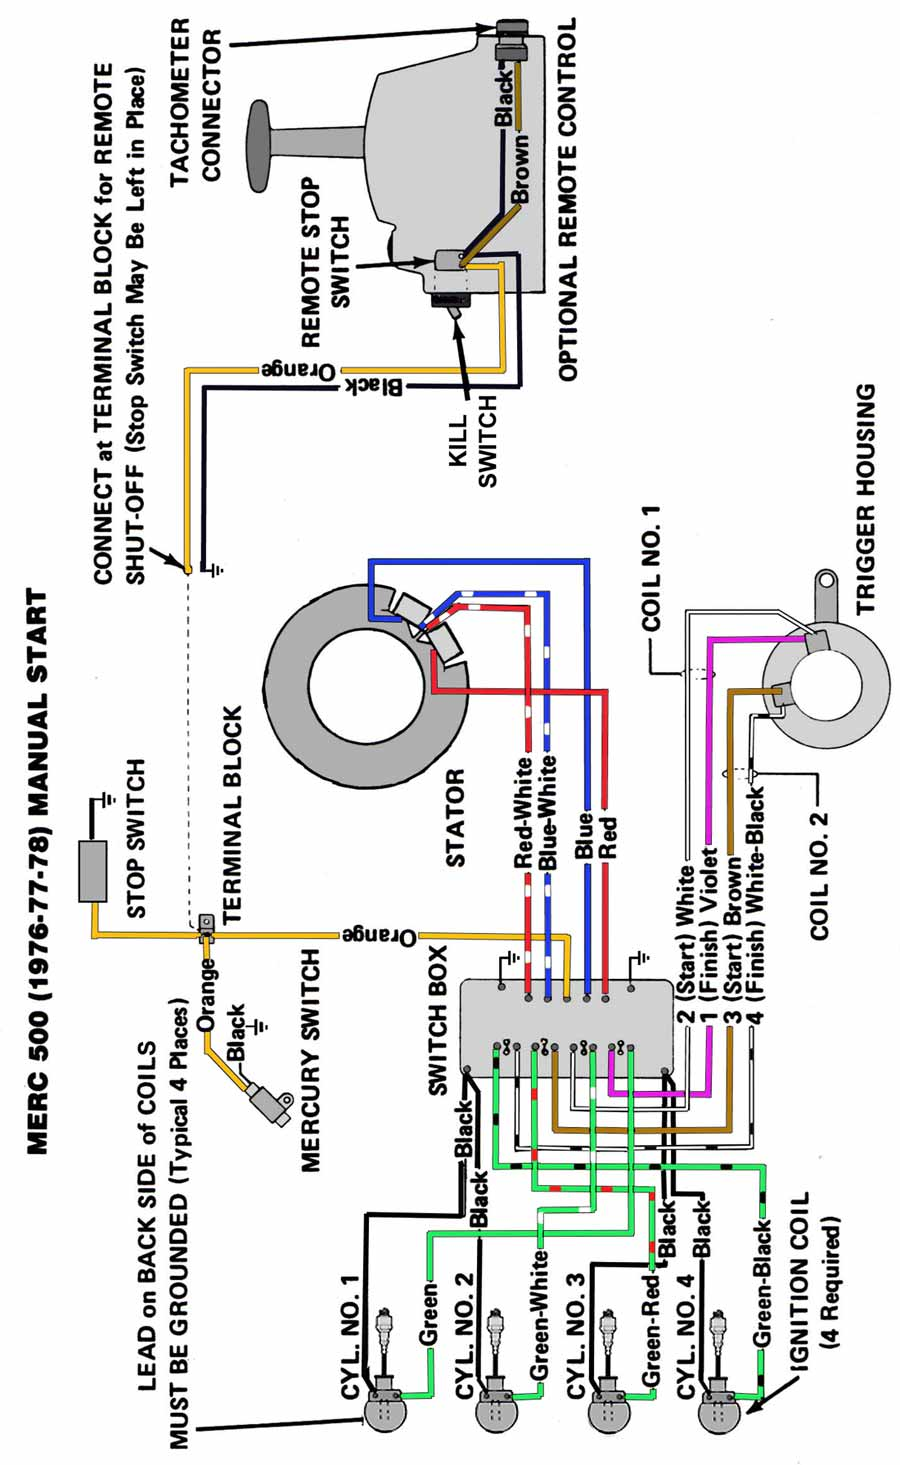 Tm 9730 Mercury 110 9 8 Hp Outboard Wiring Diagram Schematic Wiring